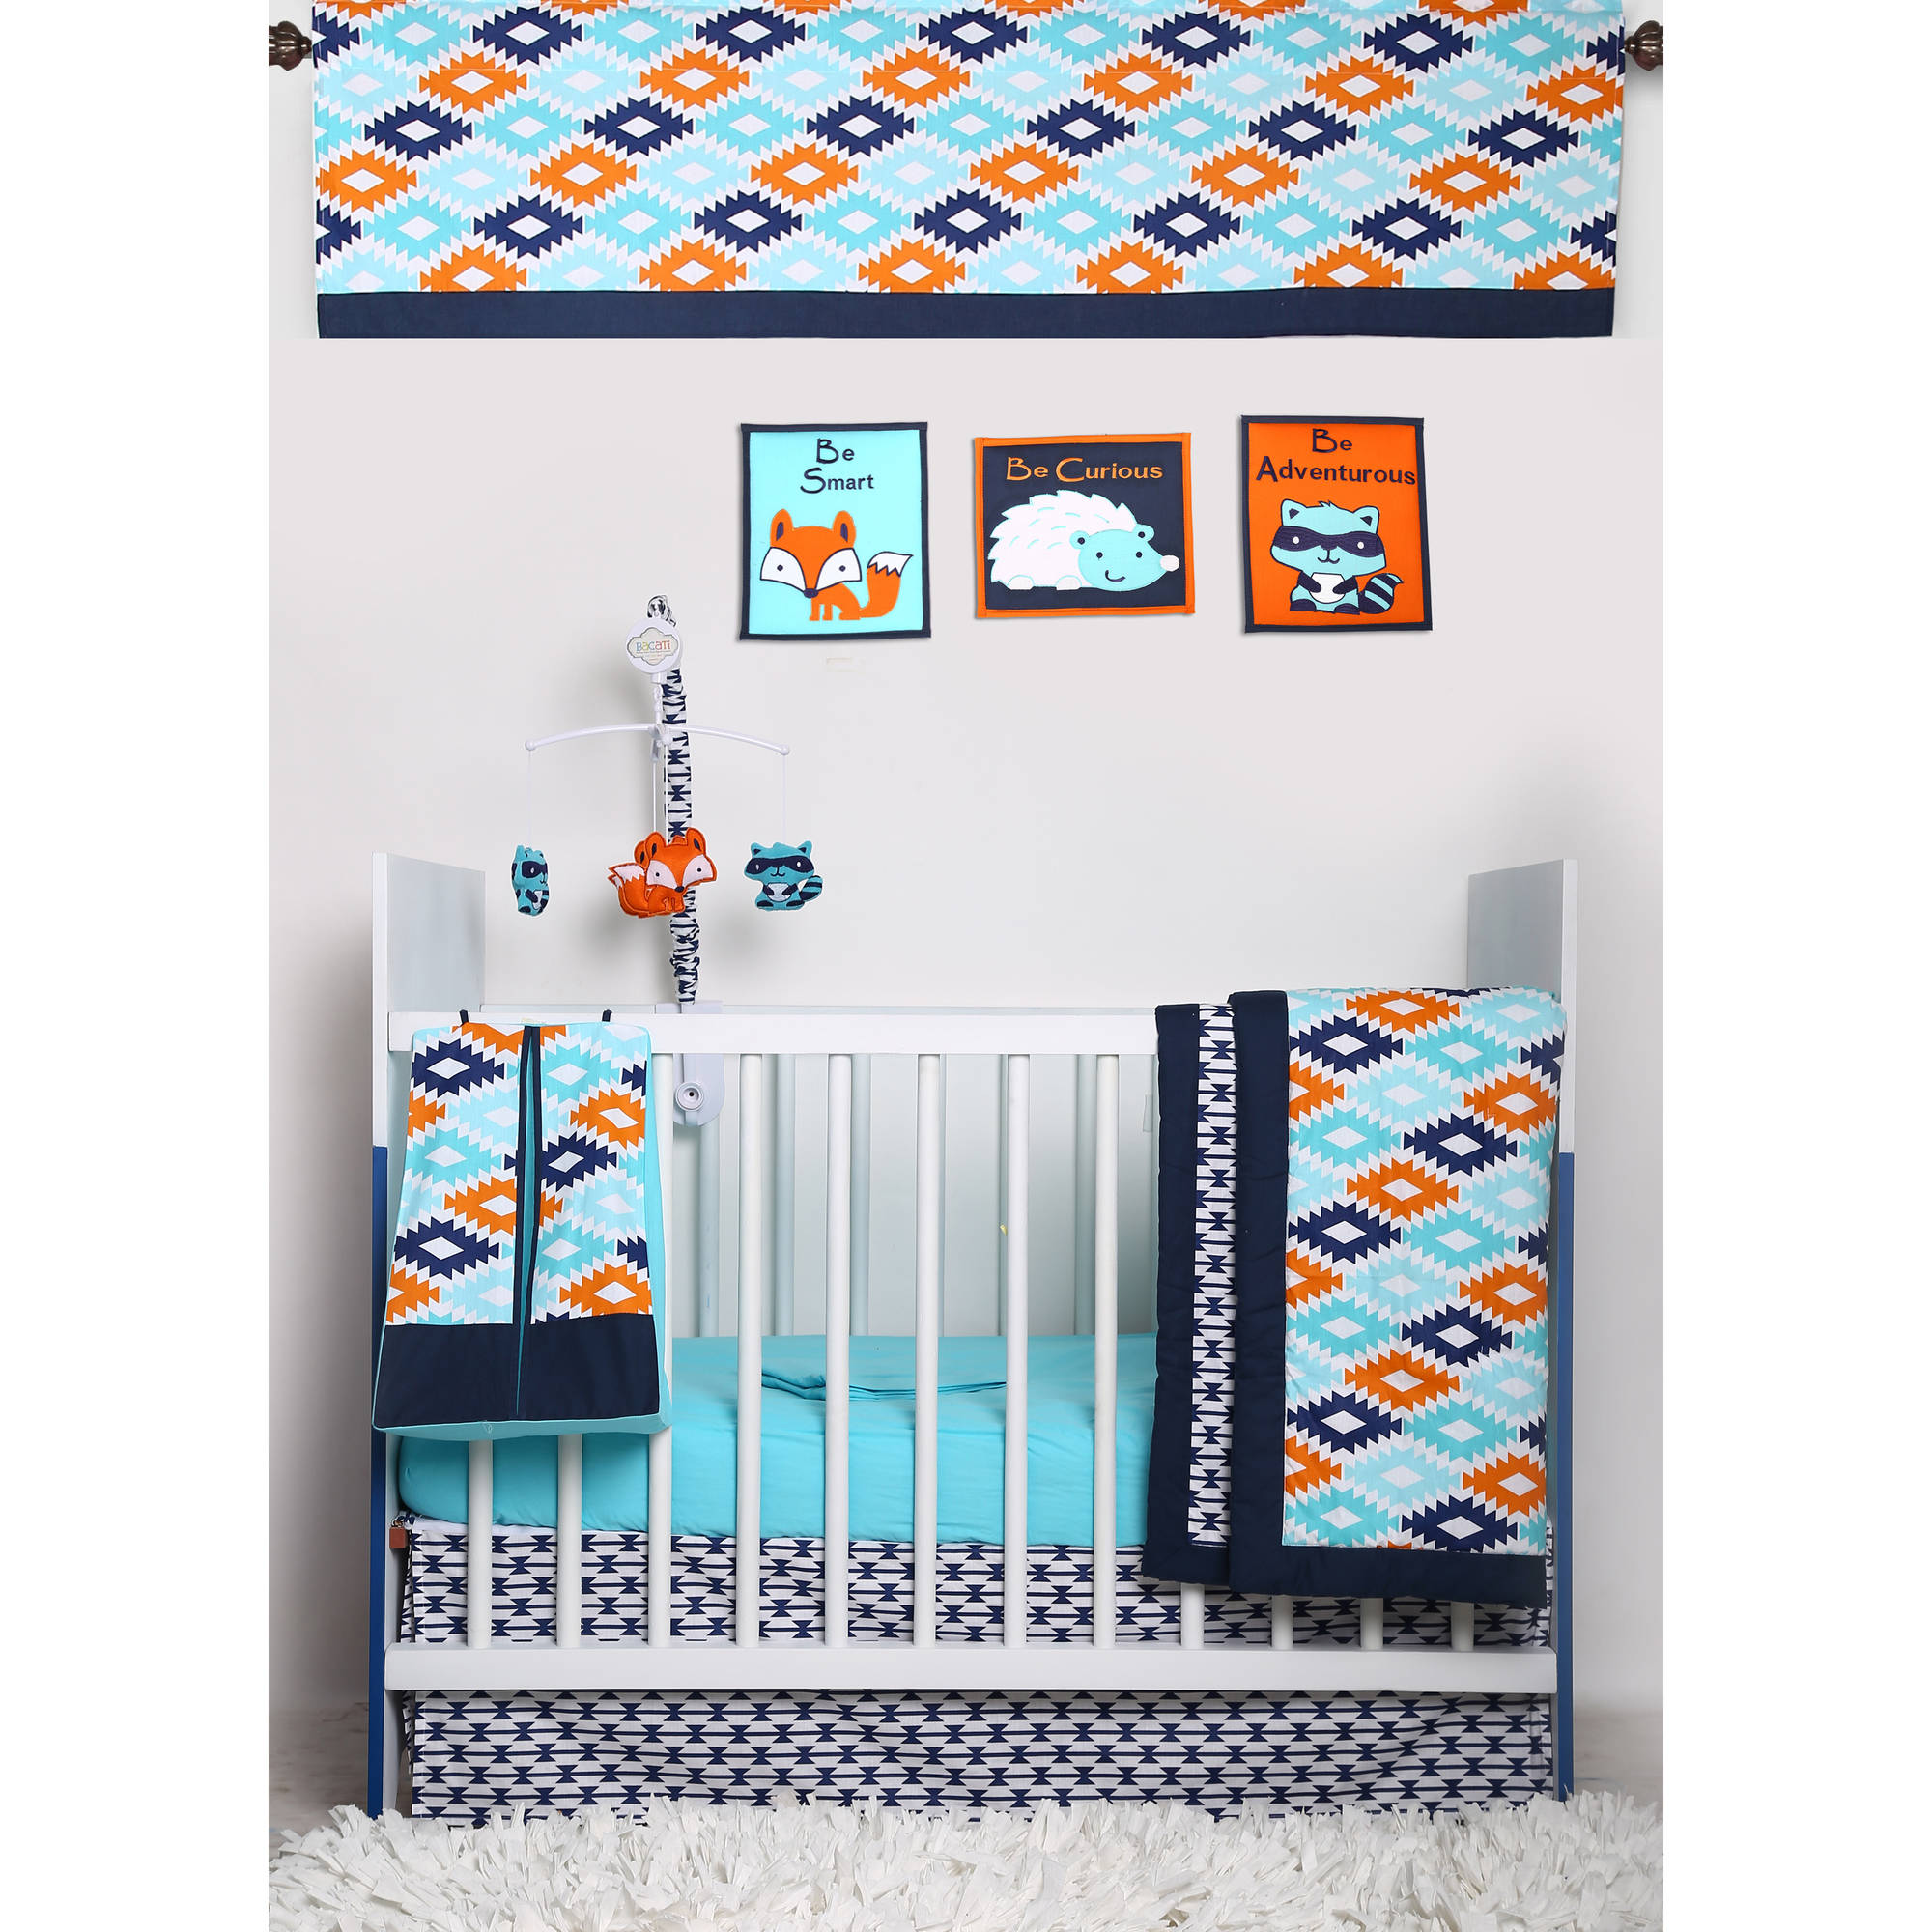 Bacati - Liam Aztec Aqua/Orange/Navy 10-Piece Nursery in a Bag Crib Bedding Set 100% Cotton Percale Unisex Crib Bedding Set with 2 crib fitted sheets